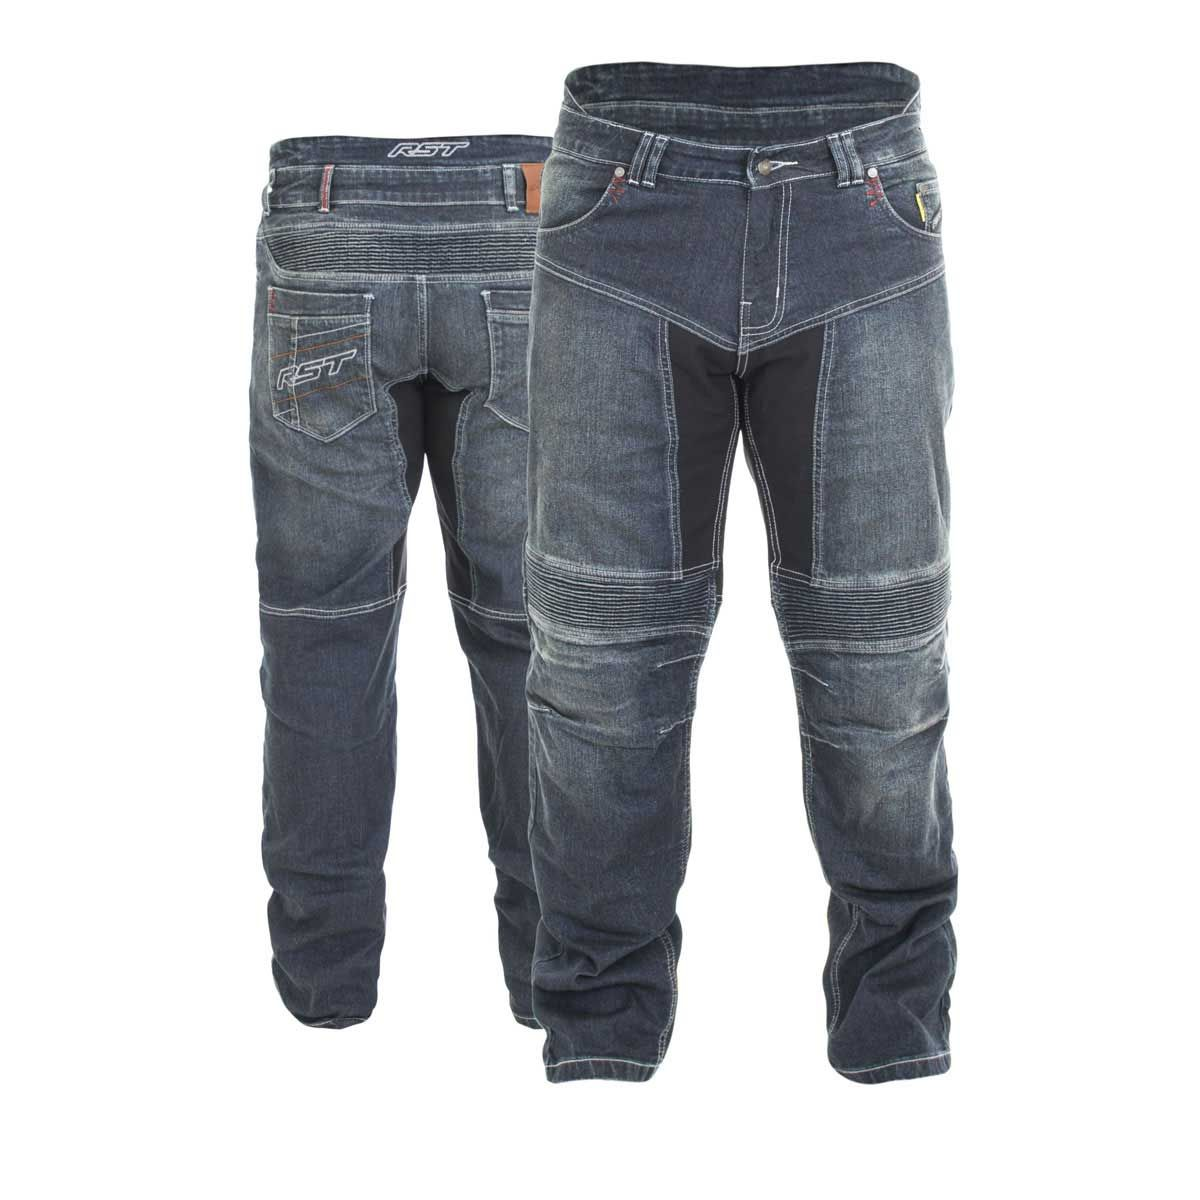 RST Technical Aramid Textile Motorcycle Jeans Dark Wash Blue